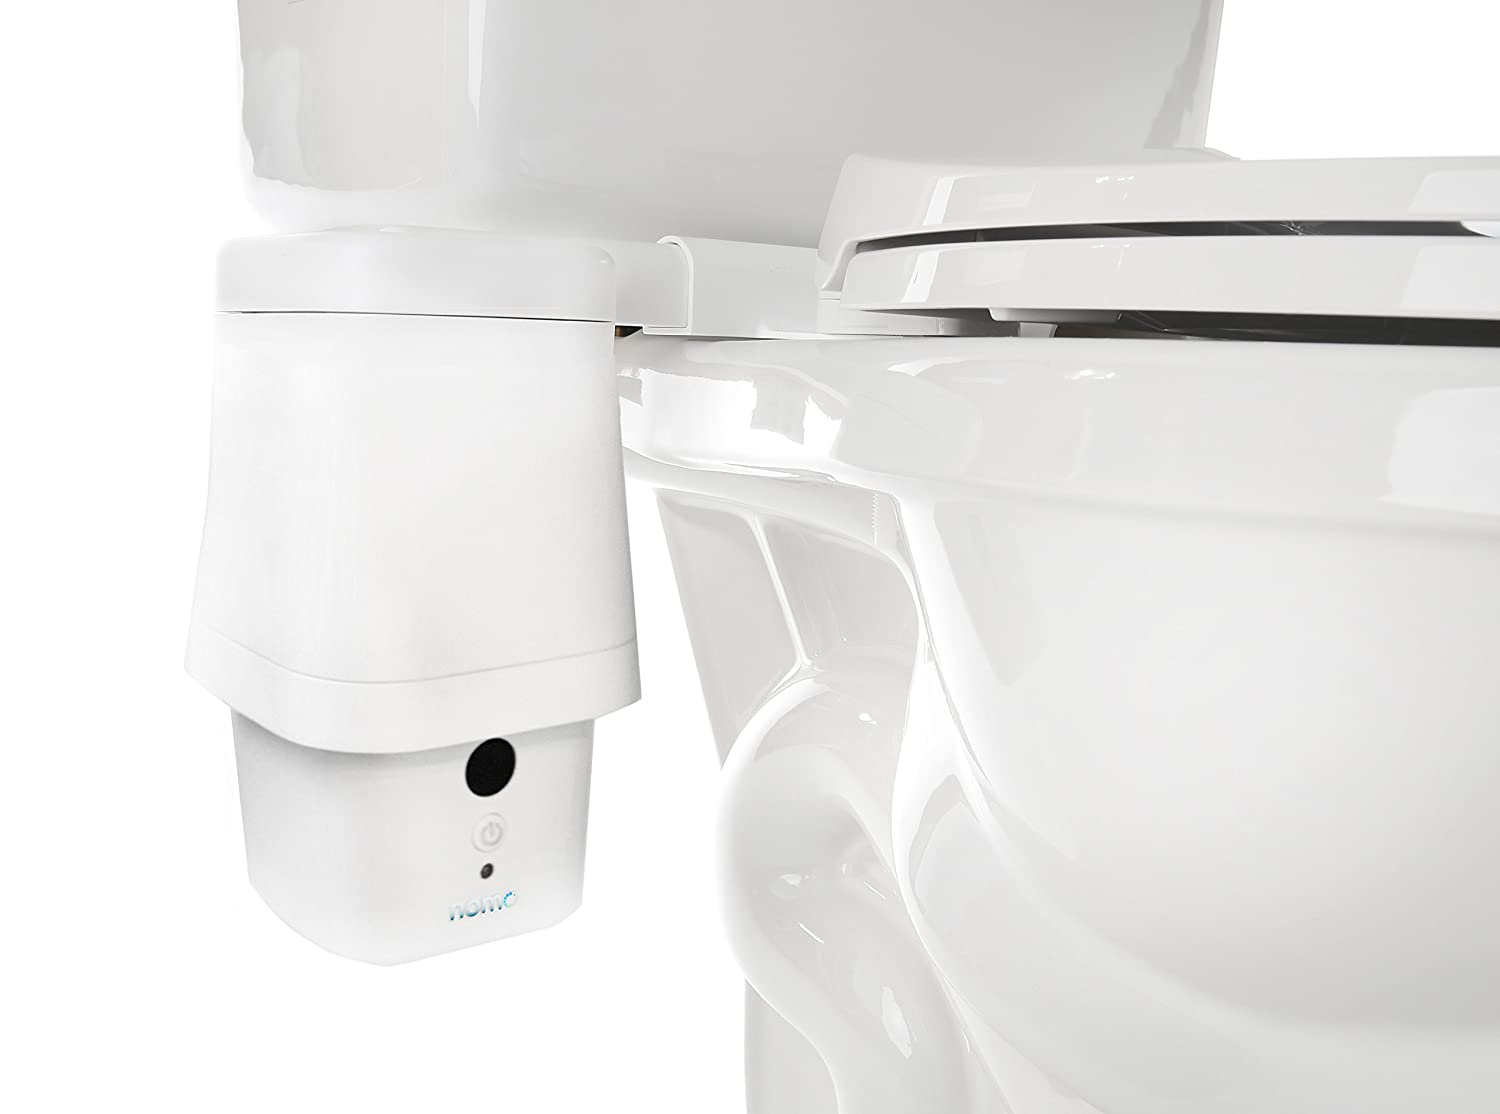 Amazon.com: NoMO Air Purifier for Toilet Bowl-Chemical Free with ...